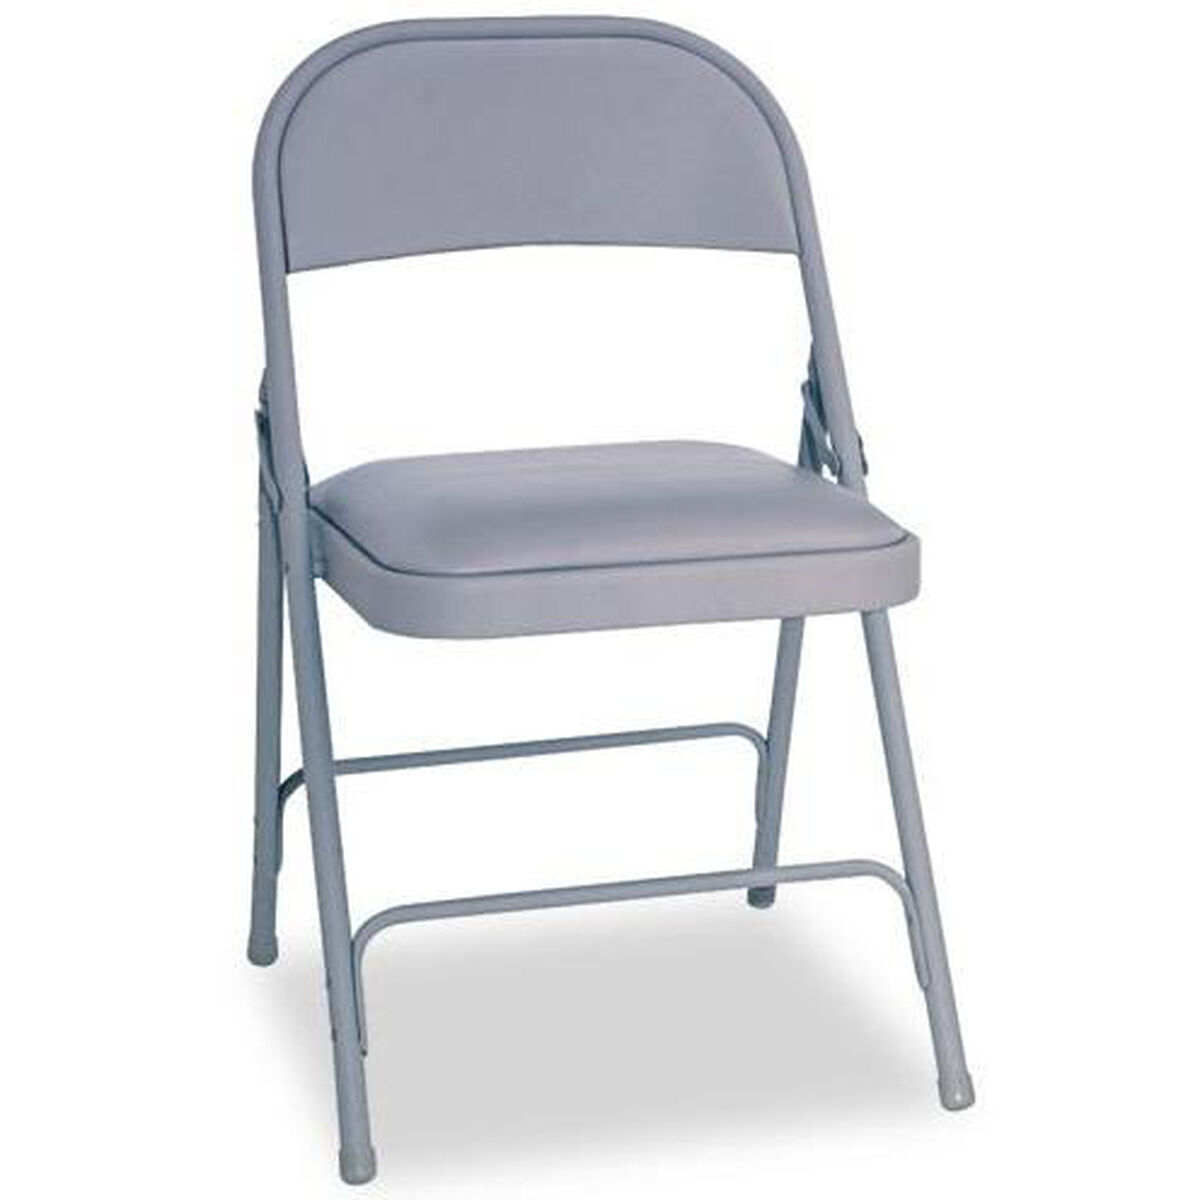 Alera FC94VY40G Steel Folding Chair With Padded Seat, Gray